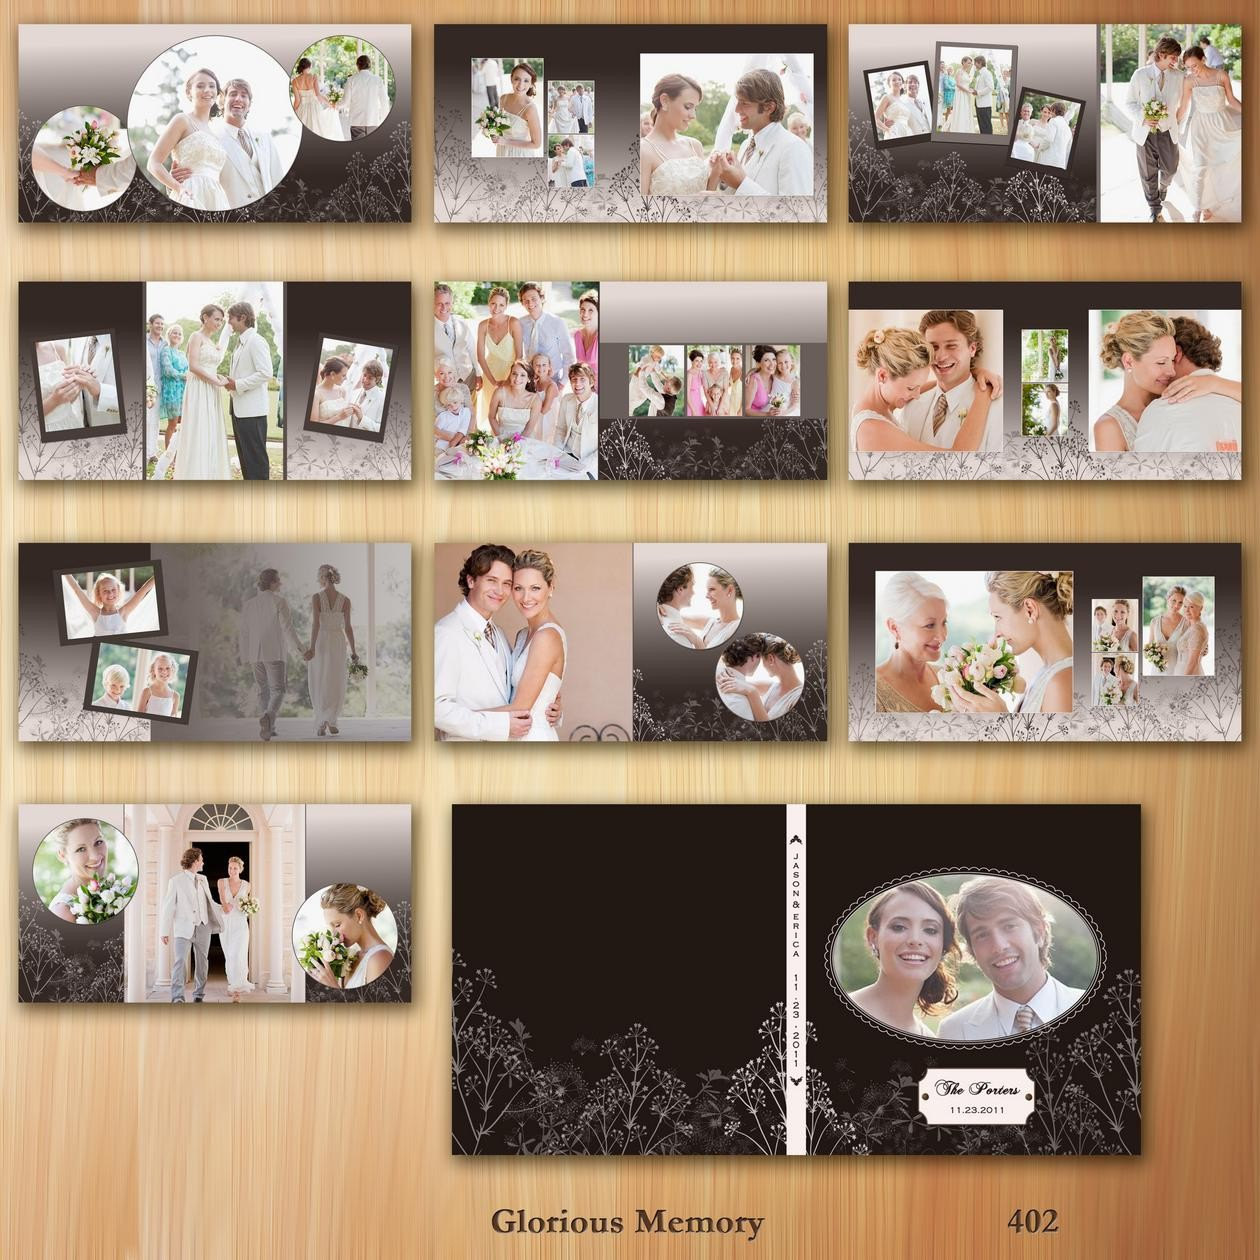 10 free wedding album templates photoshop images free for Wedding photo album templates in photoshop